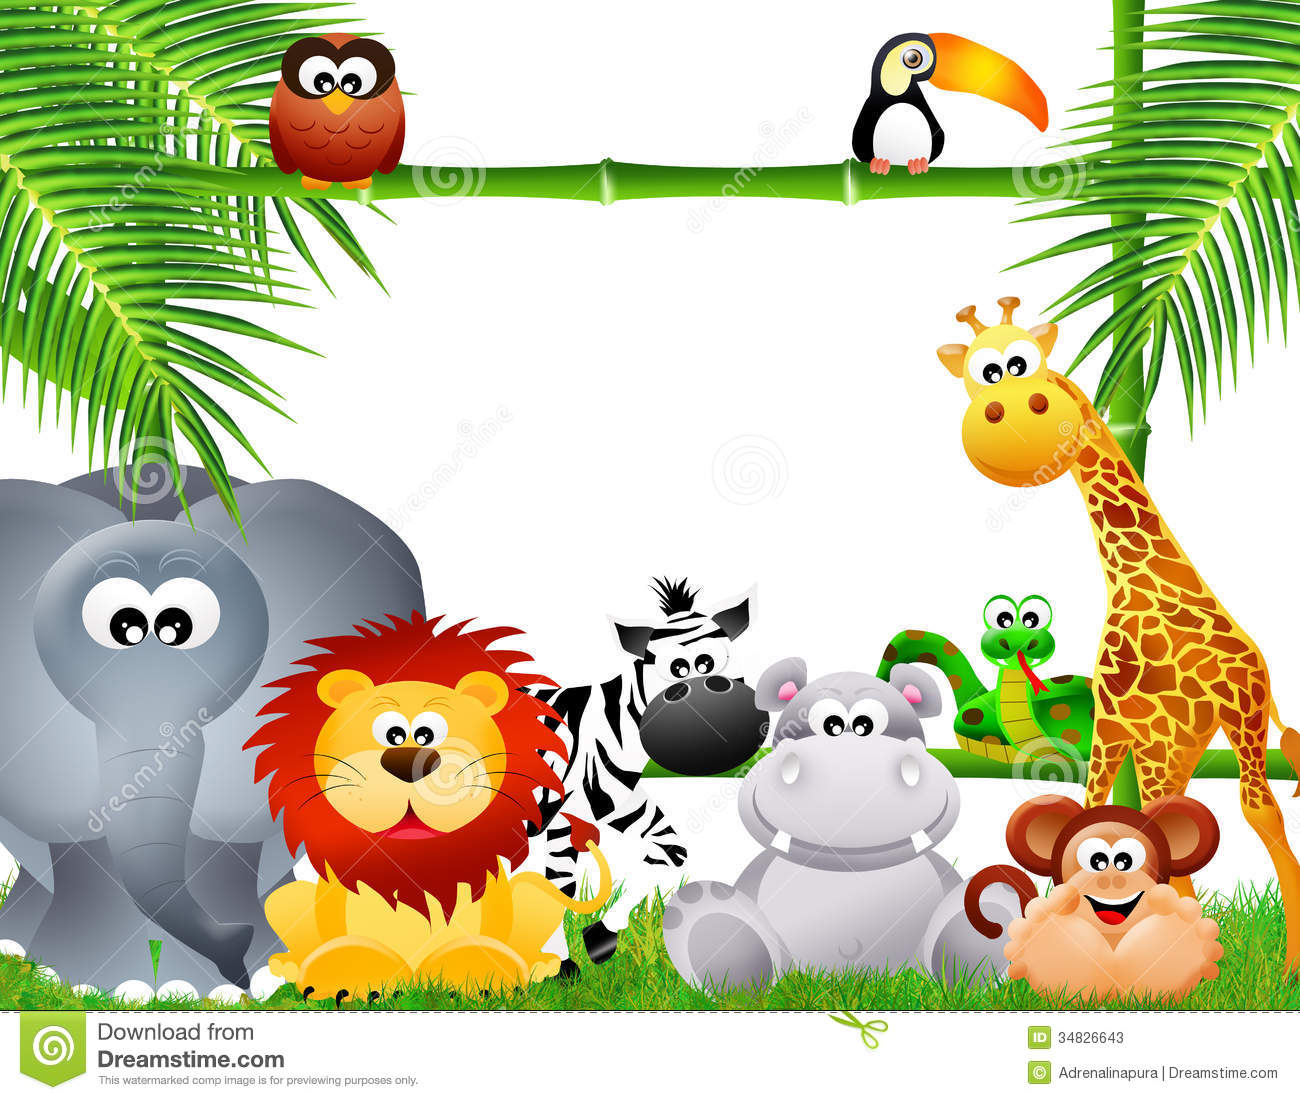 Zoo Entrance Clipart - Clipart Kid